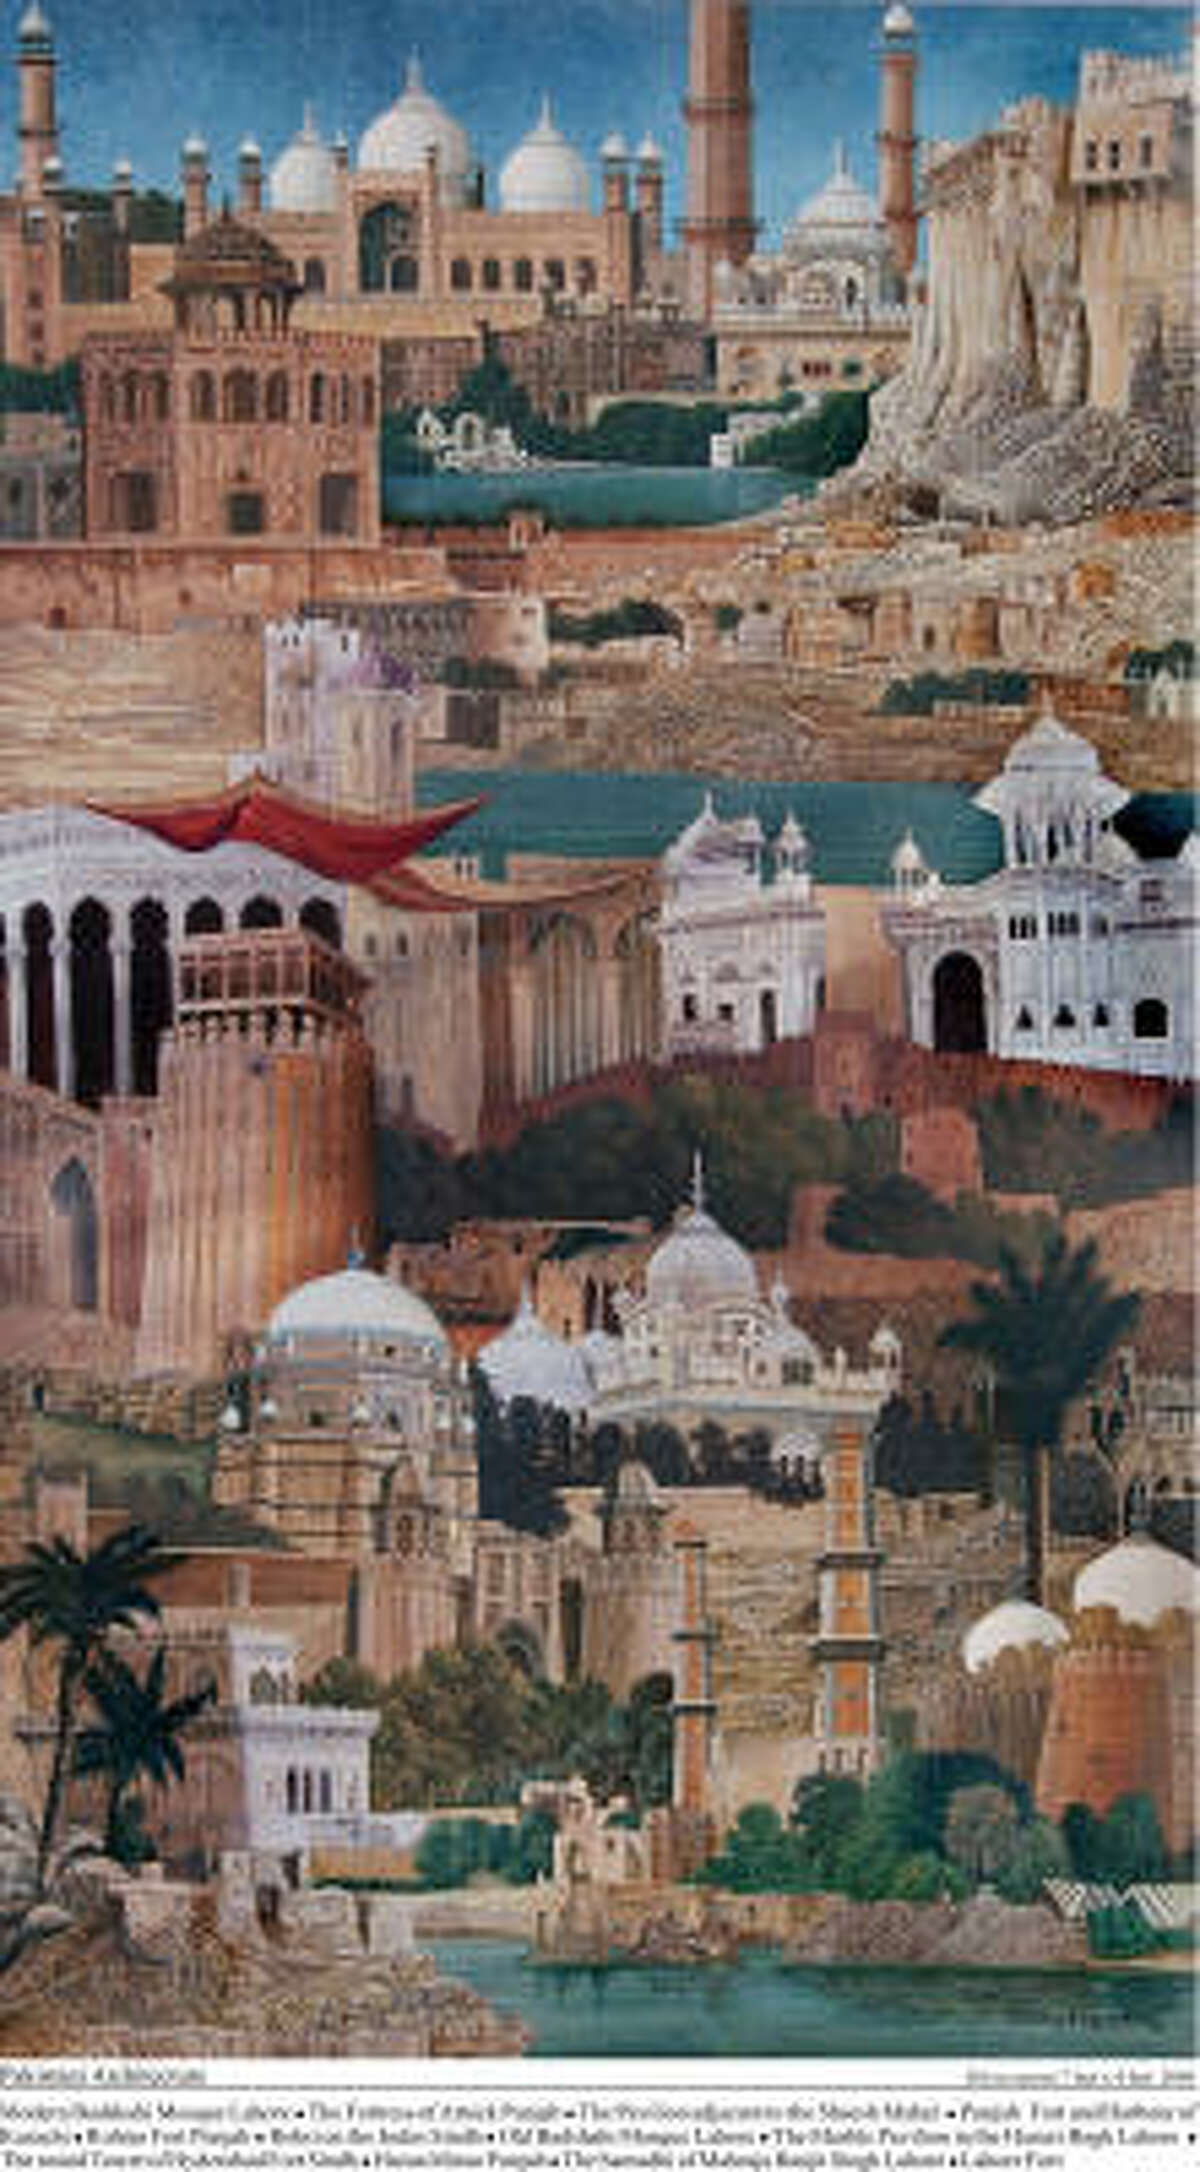 From his series of architecture paintings